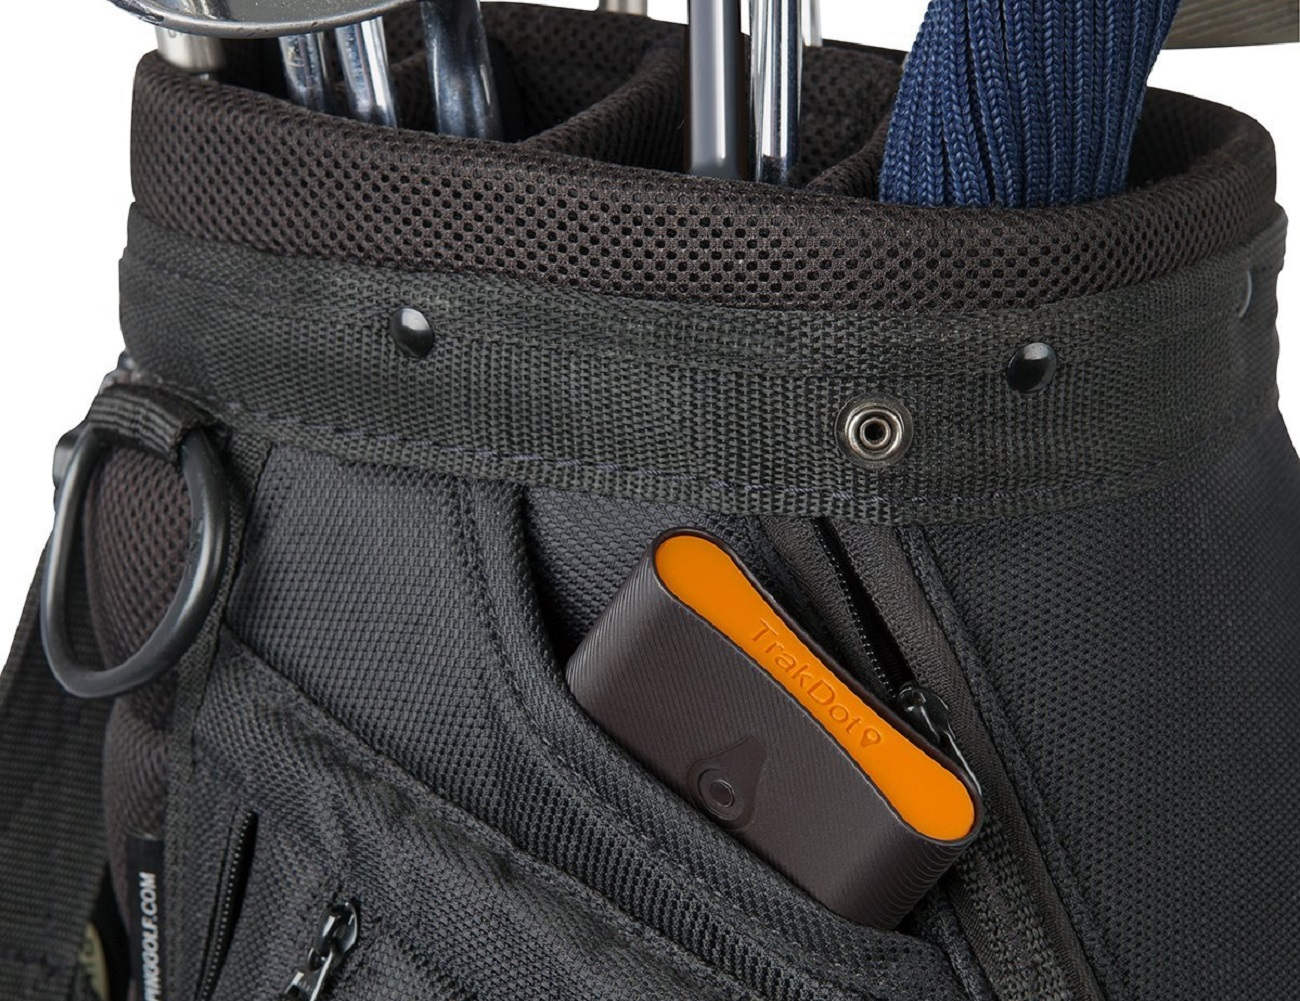 Trakdot Luggage Monitor